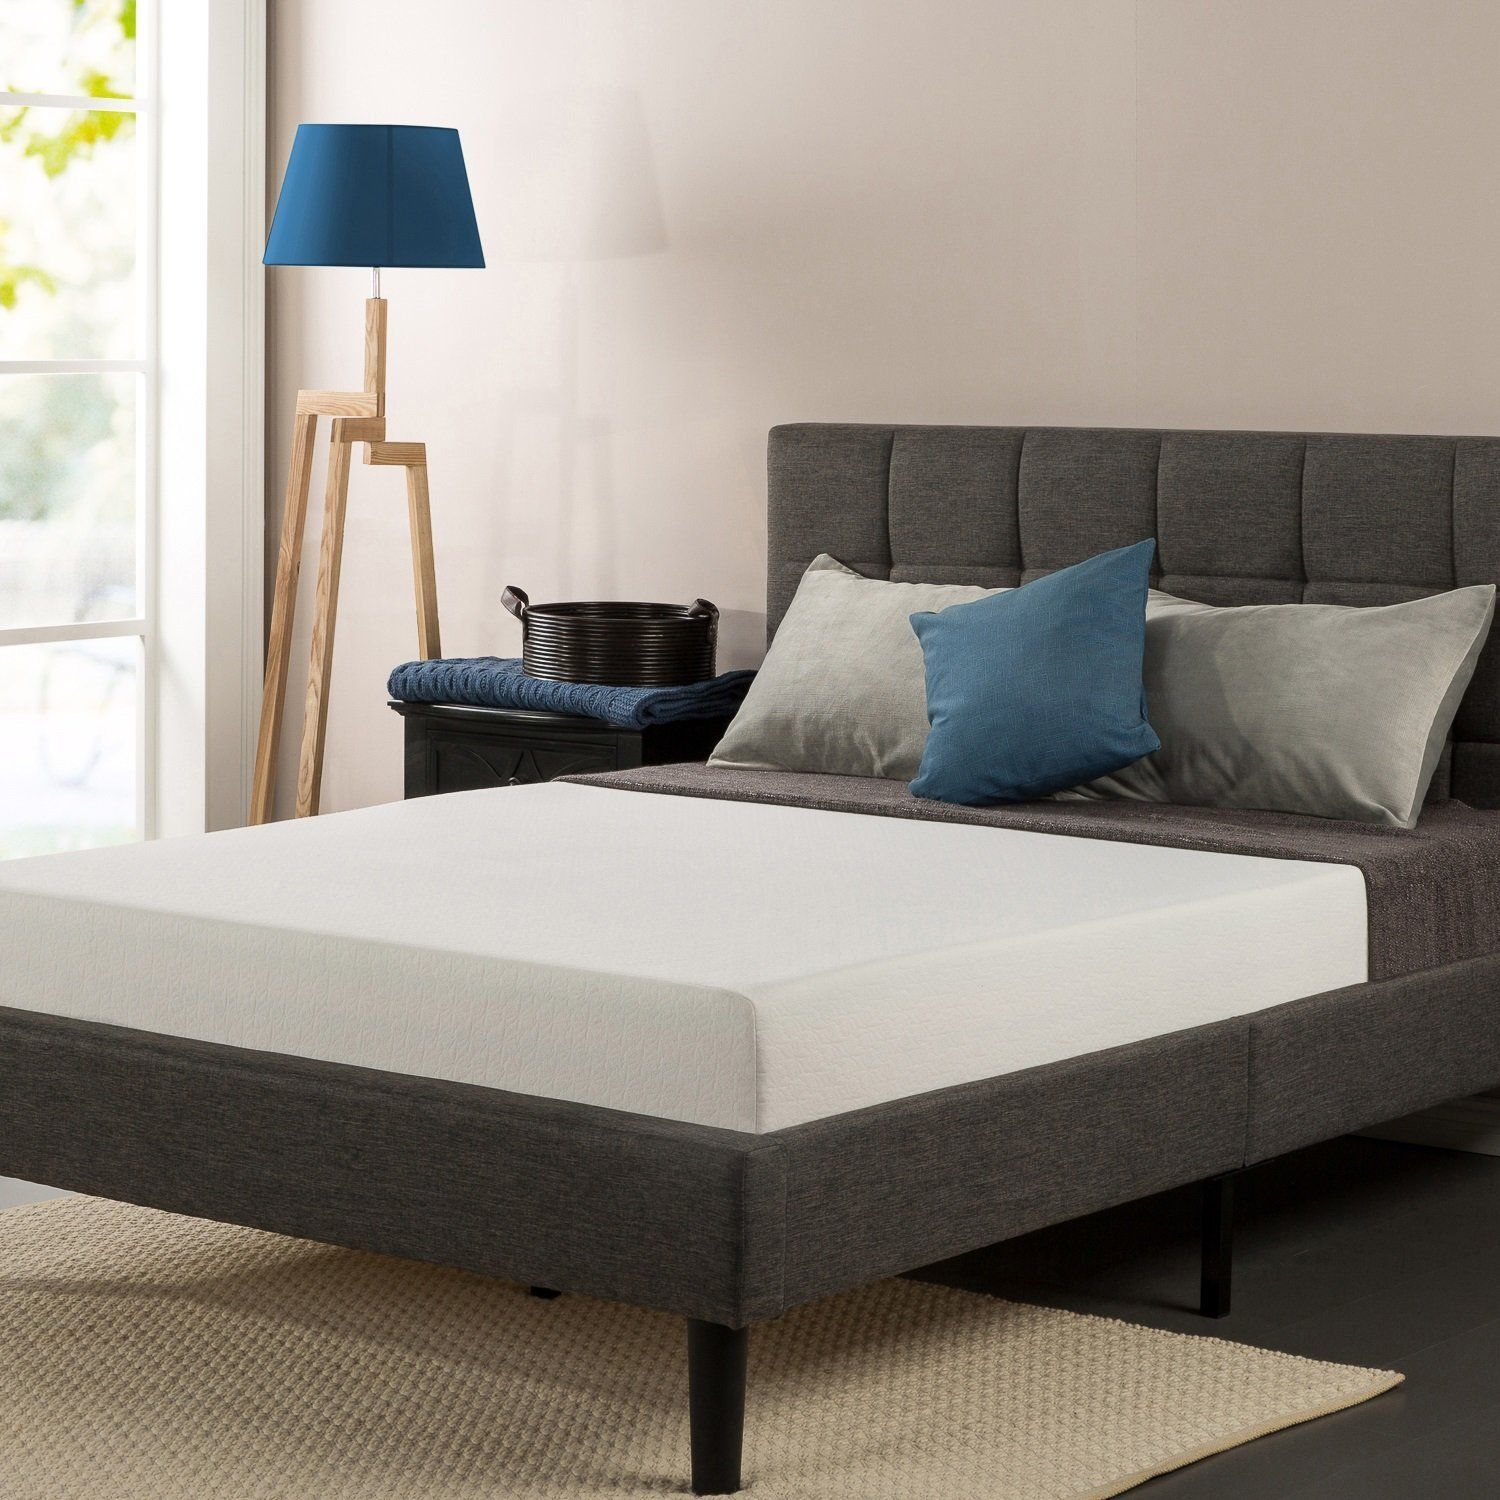 Sleep with ease and comfort on a full bed